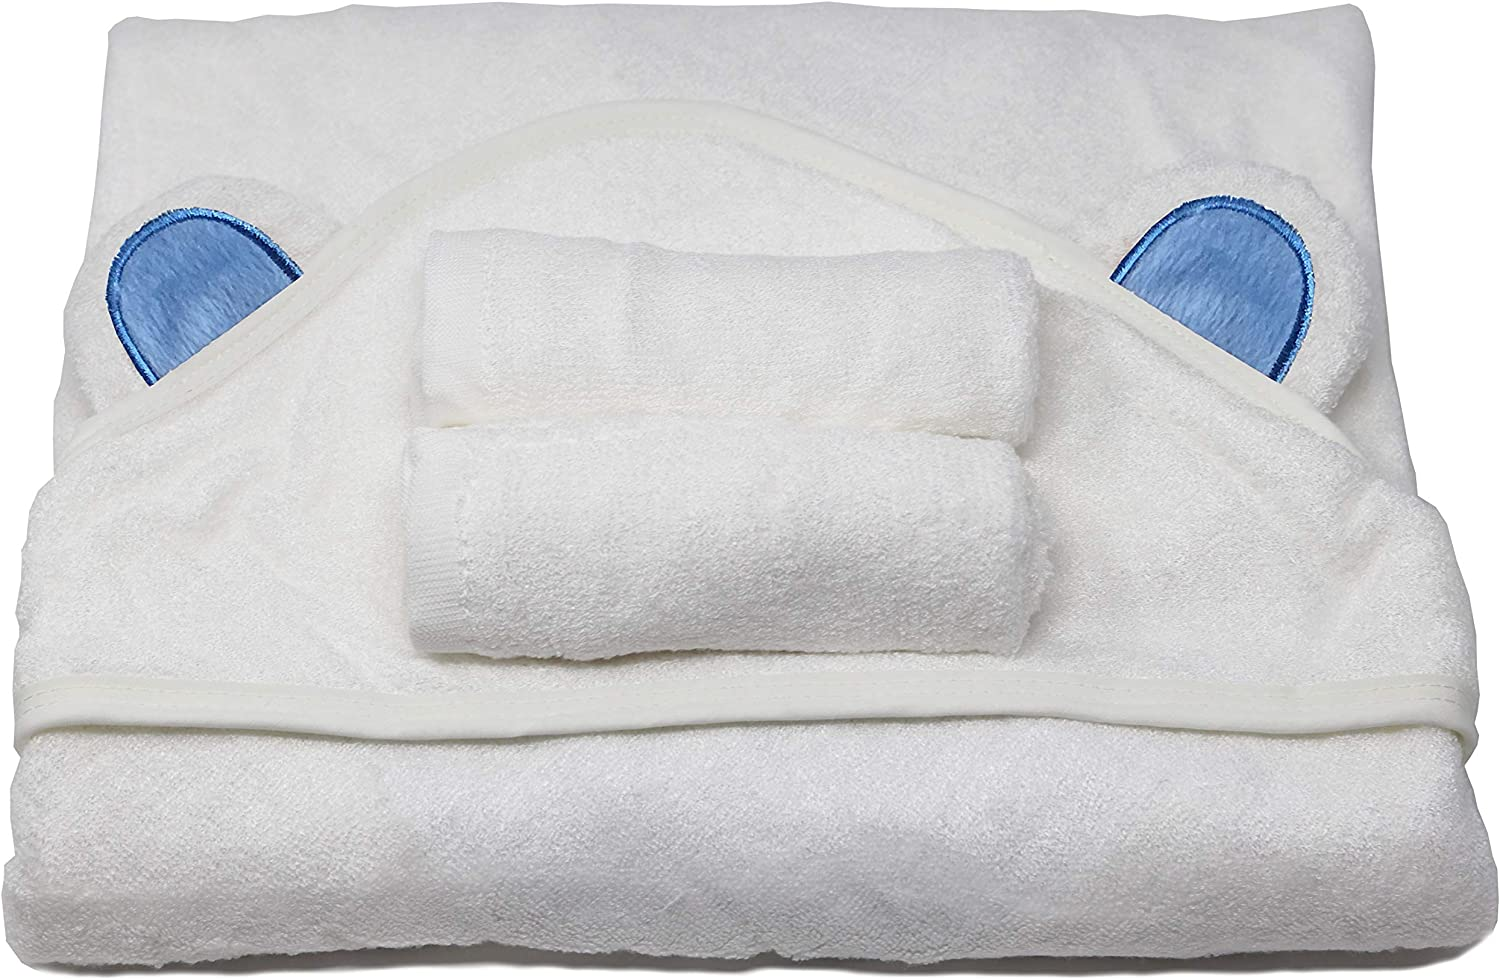 ZENB/ÉB/É Soft Organic Baby Bamboo Hooded Towel with Bear Ears /& 2 Washcloths White, Small A Set of 3 Pieces